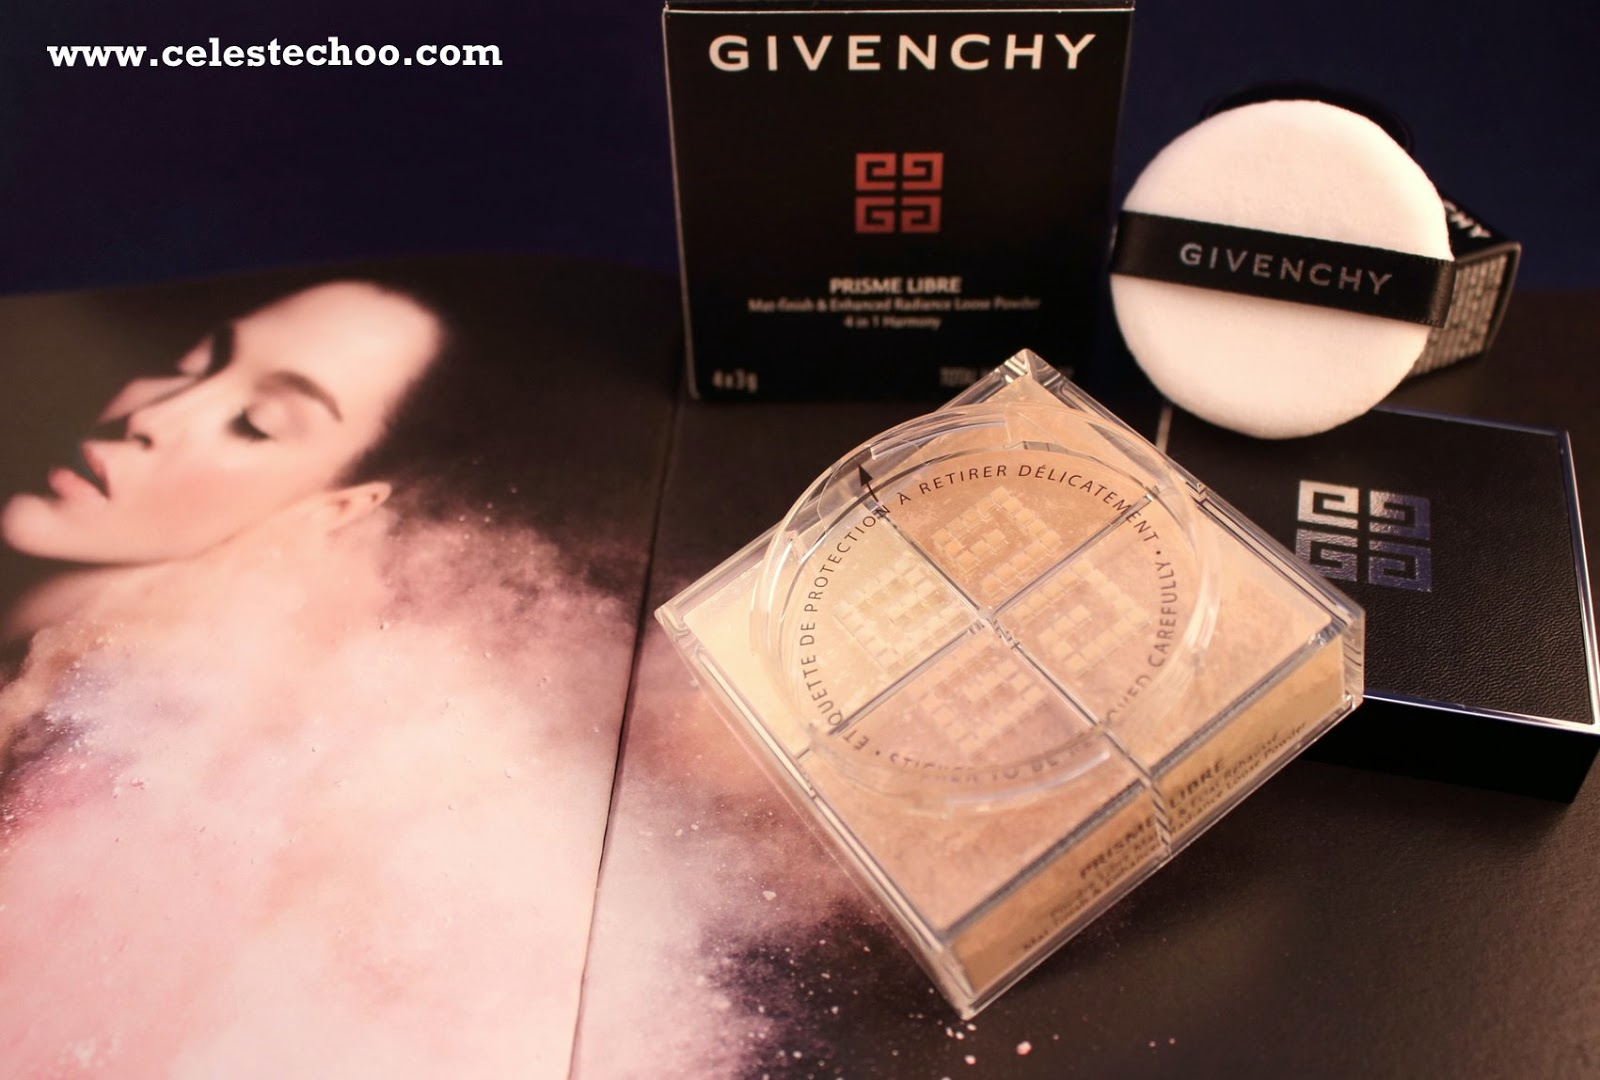 givenchy-prisme-libre-loose-powder-makeup-beauty-product-shot